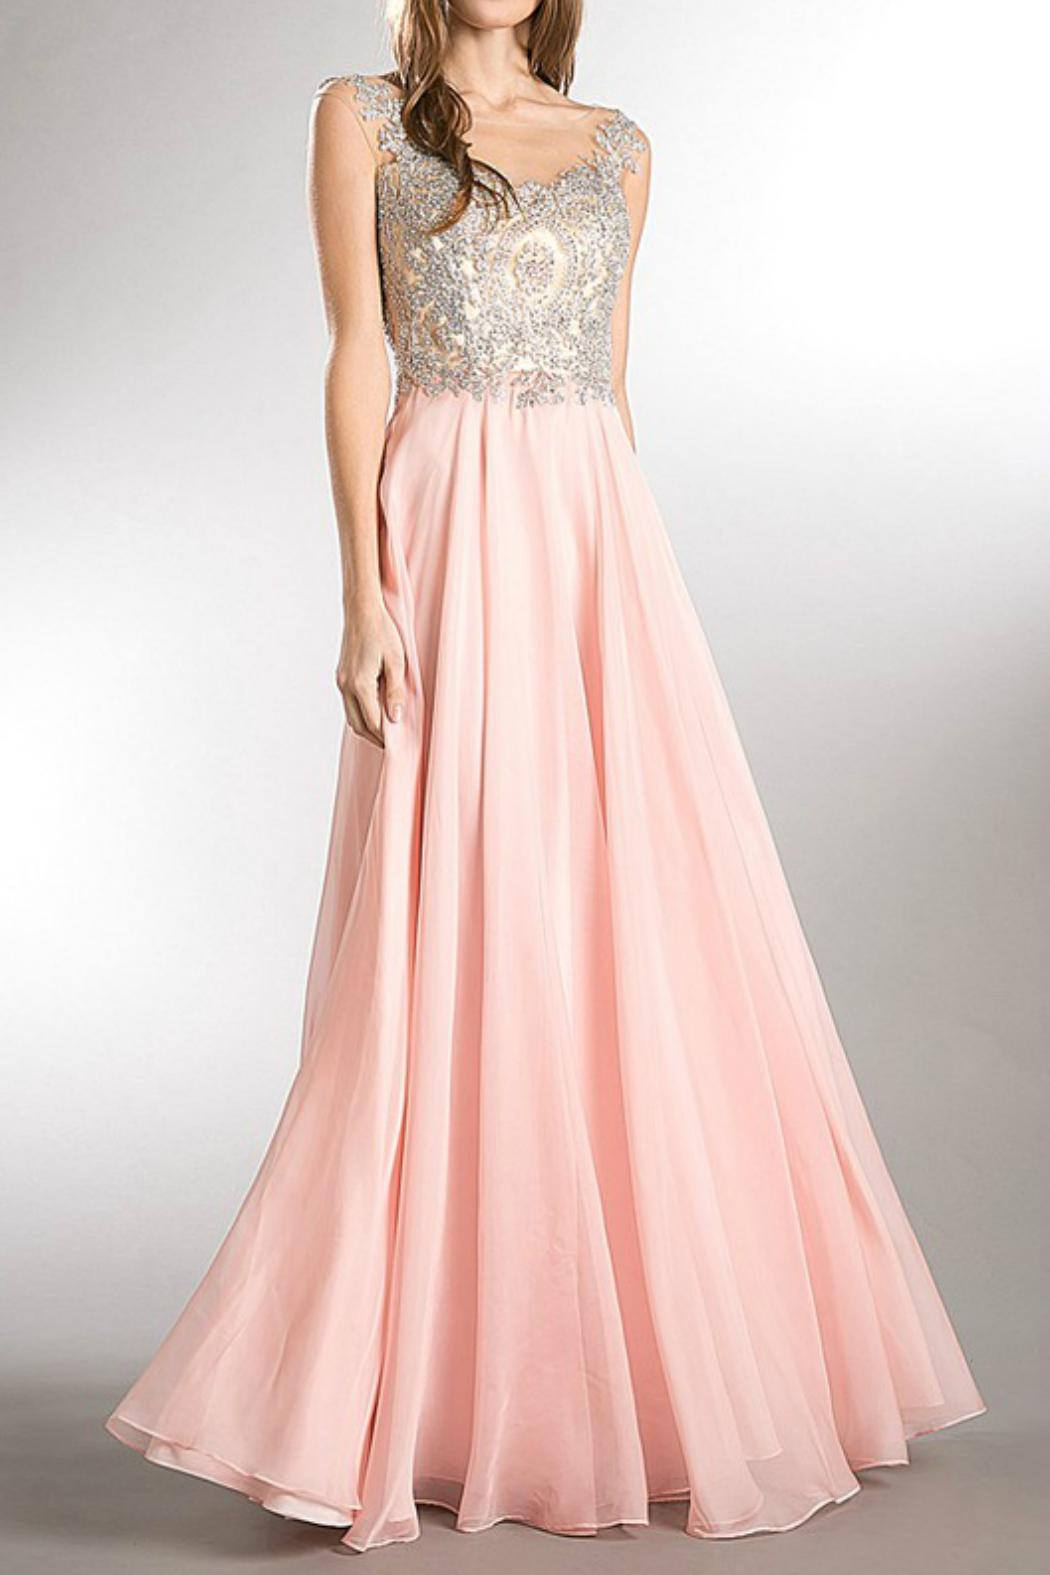 Amelia Couture Sofia Prom Dress from Alaska by Apricot Lane ...